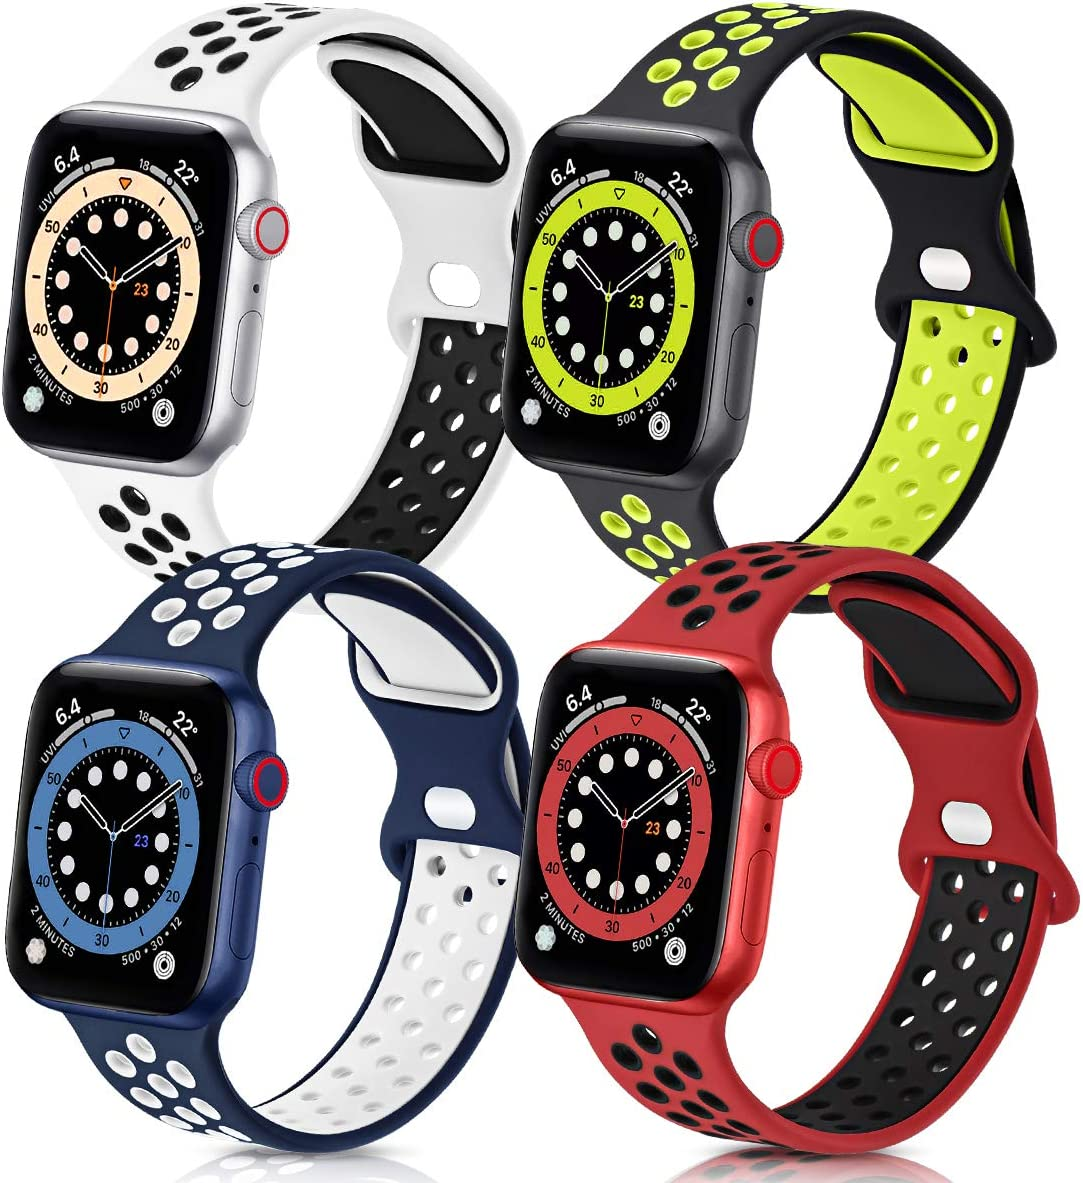 GROGON Compatible with Apple Watch Bands 44mm 42mm 40mm 38mm for Men Women, 4 Pack Silicone Sport Waterproof Breathable Soft Replacement Strap for iWatch SE Series /6/5/4/3/2/1(42mm 44mm S/M,No.4)